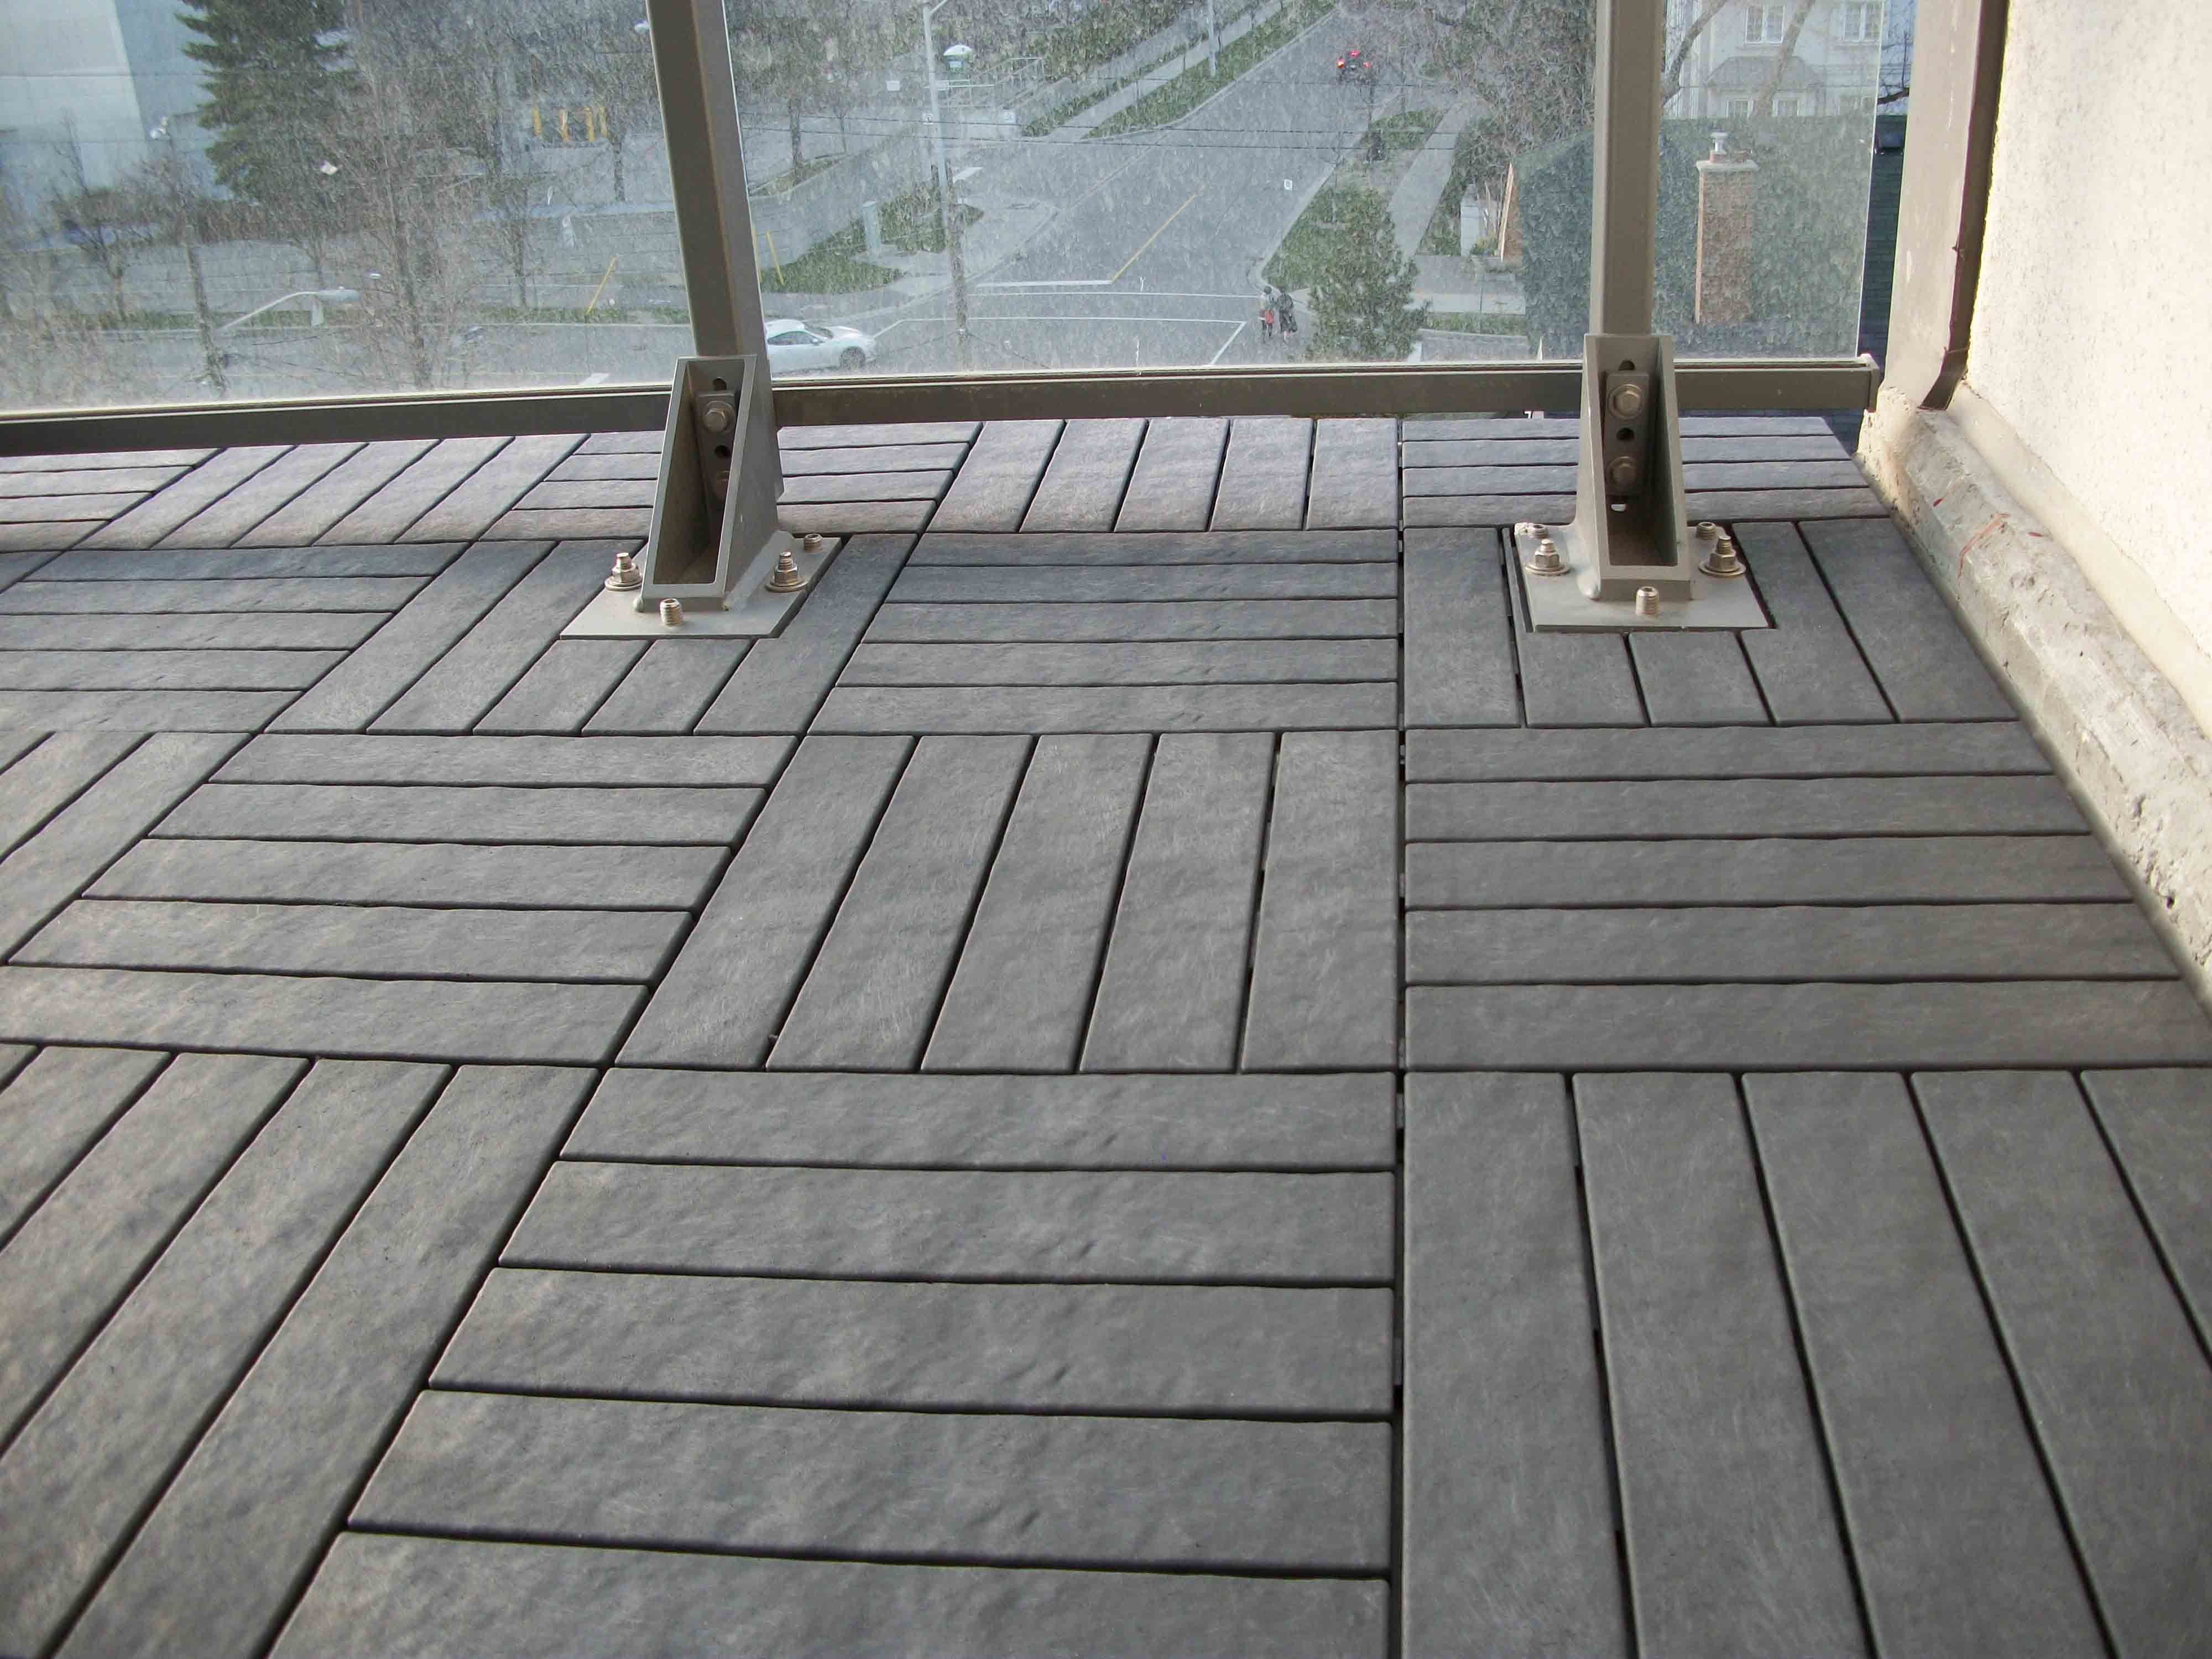 Dachterrasse Bodenbelag Charcoal Grey Floor Decking Tiles On Balcony Floor We